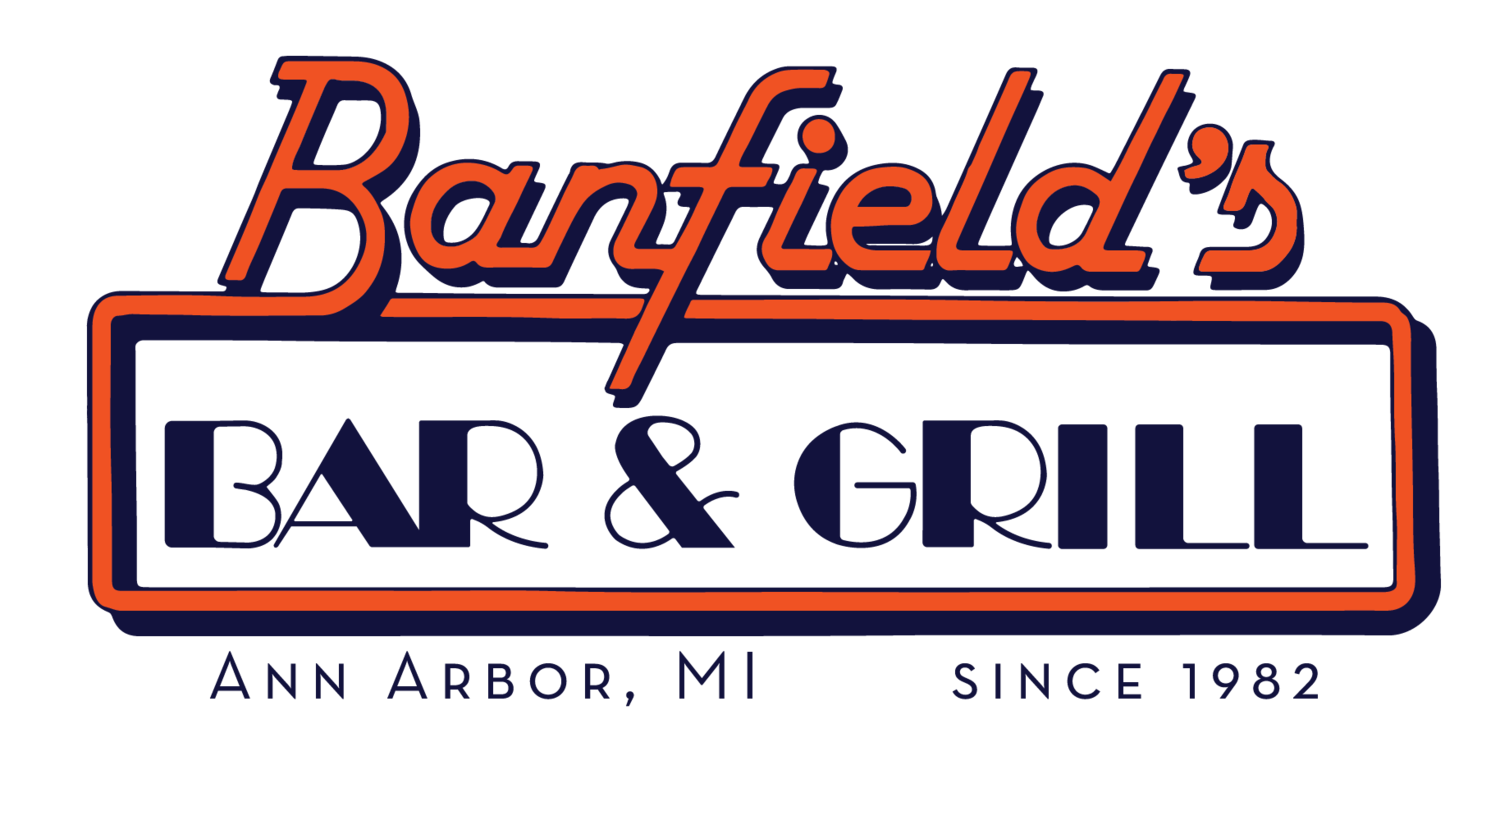 Banfield's Bar & Grill